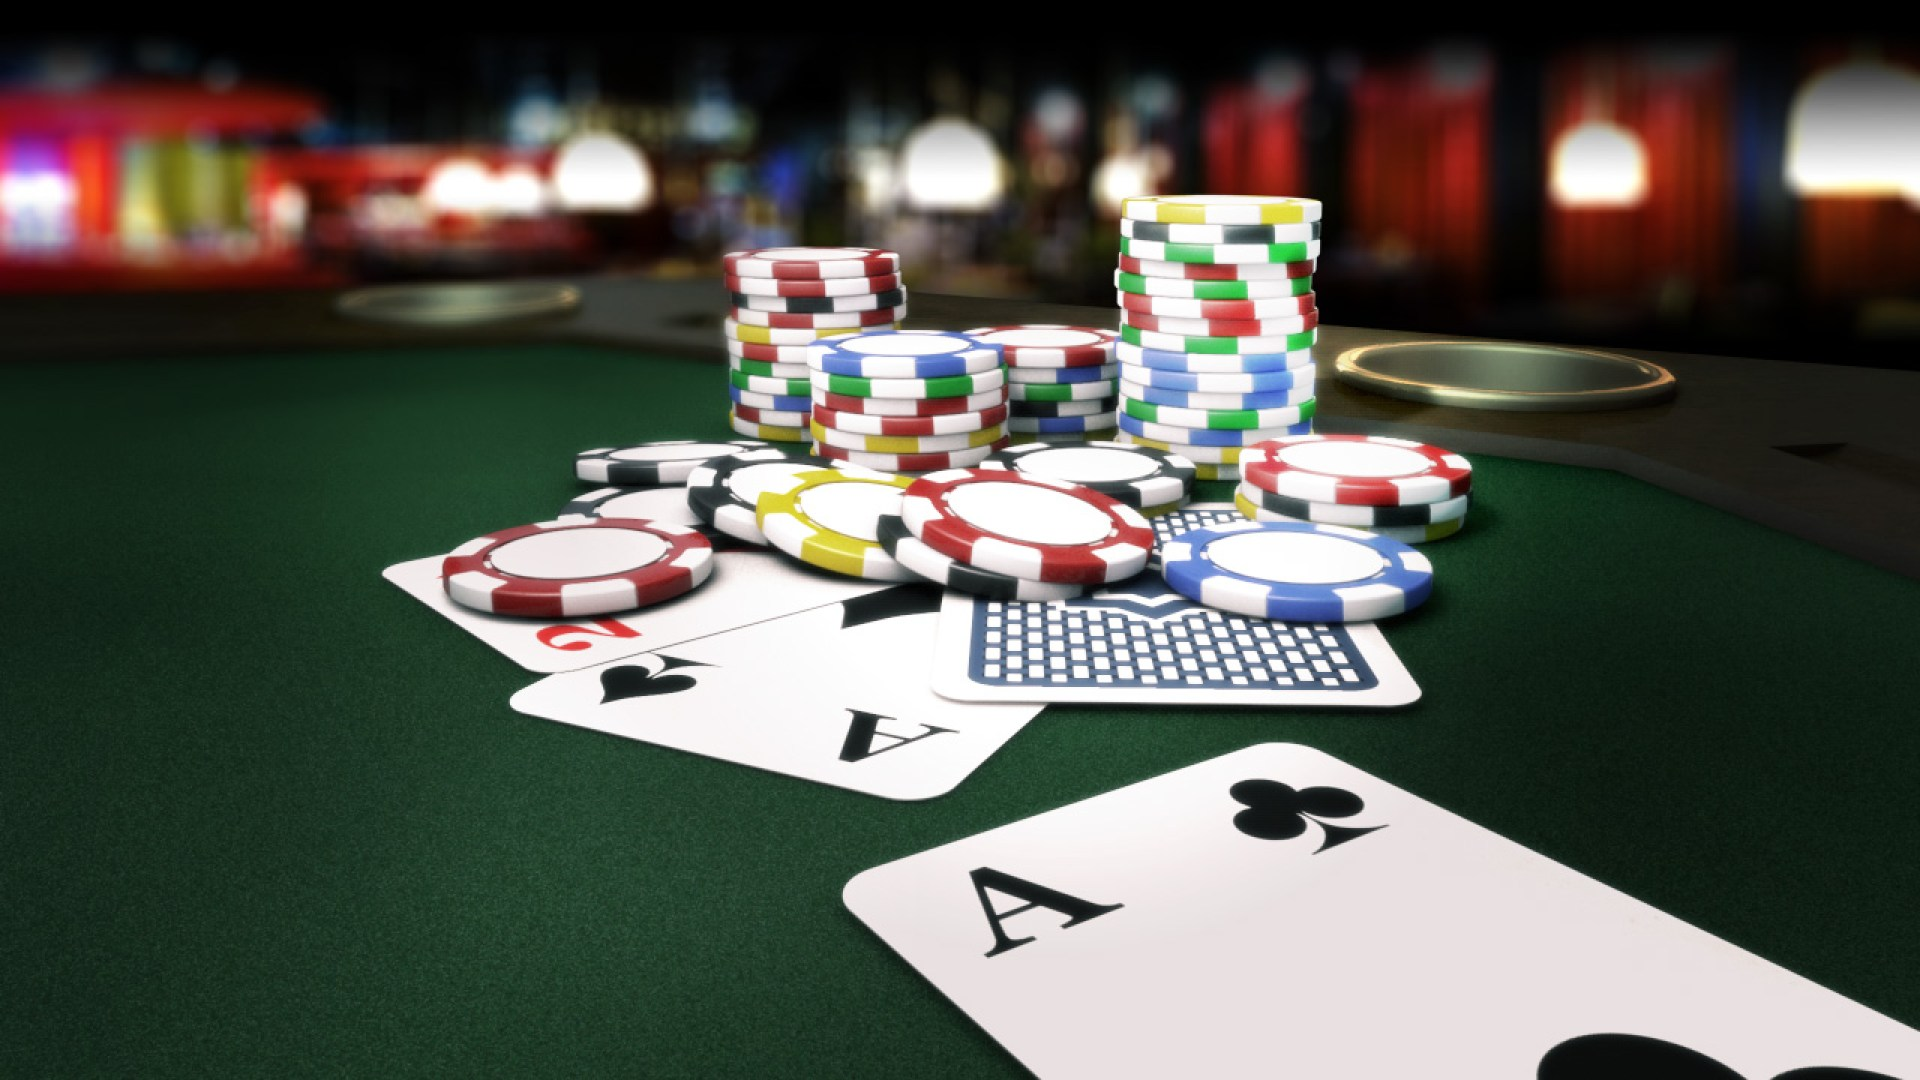 Significance of Online Poker Sites